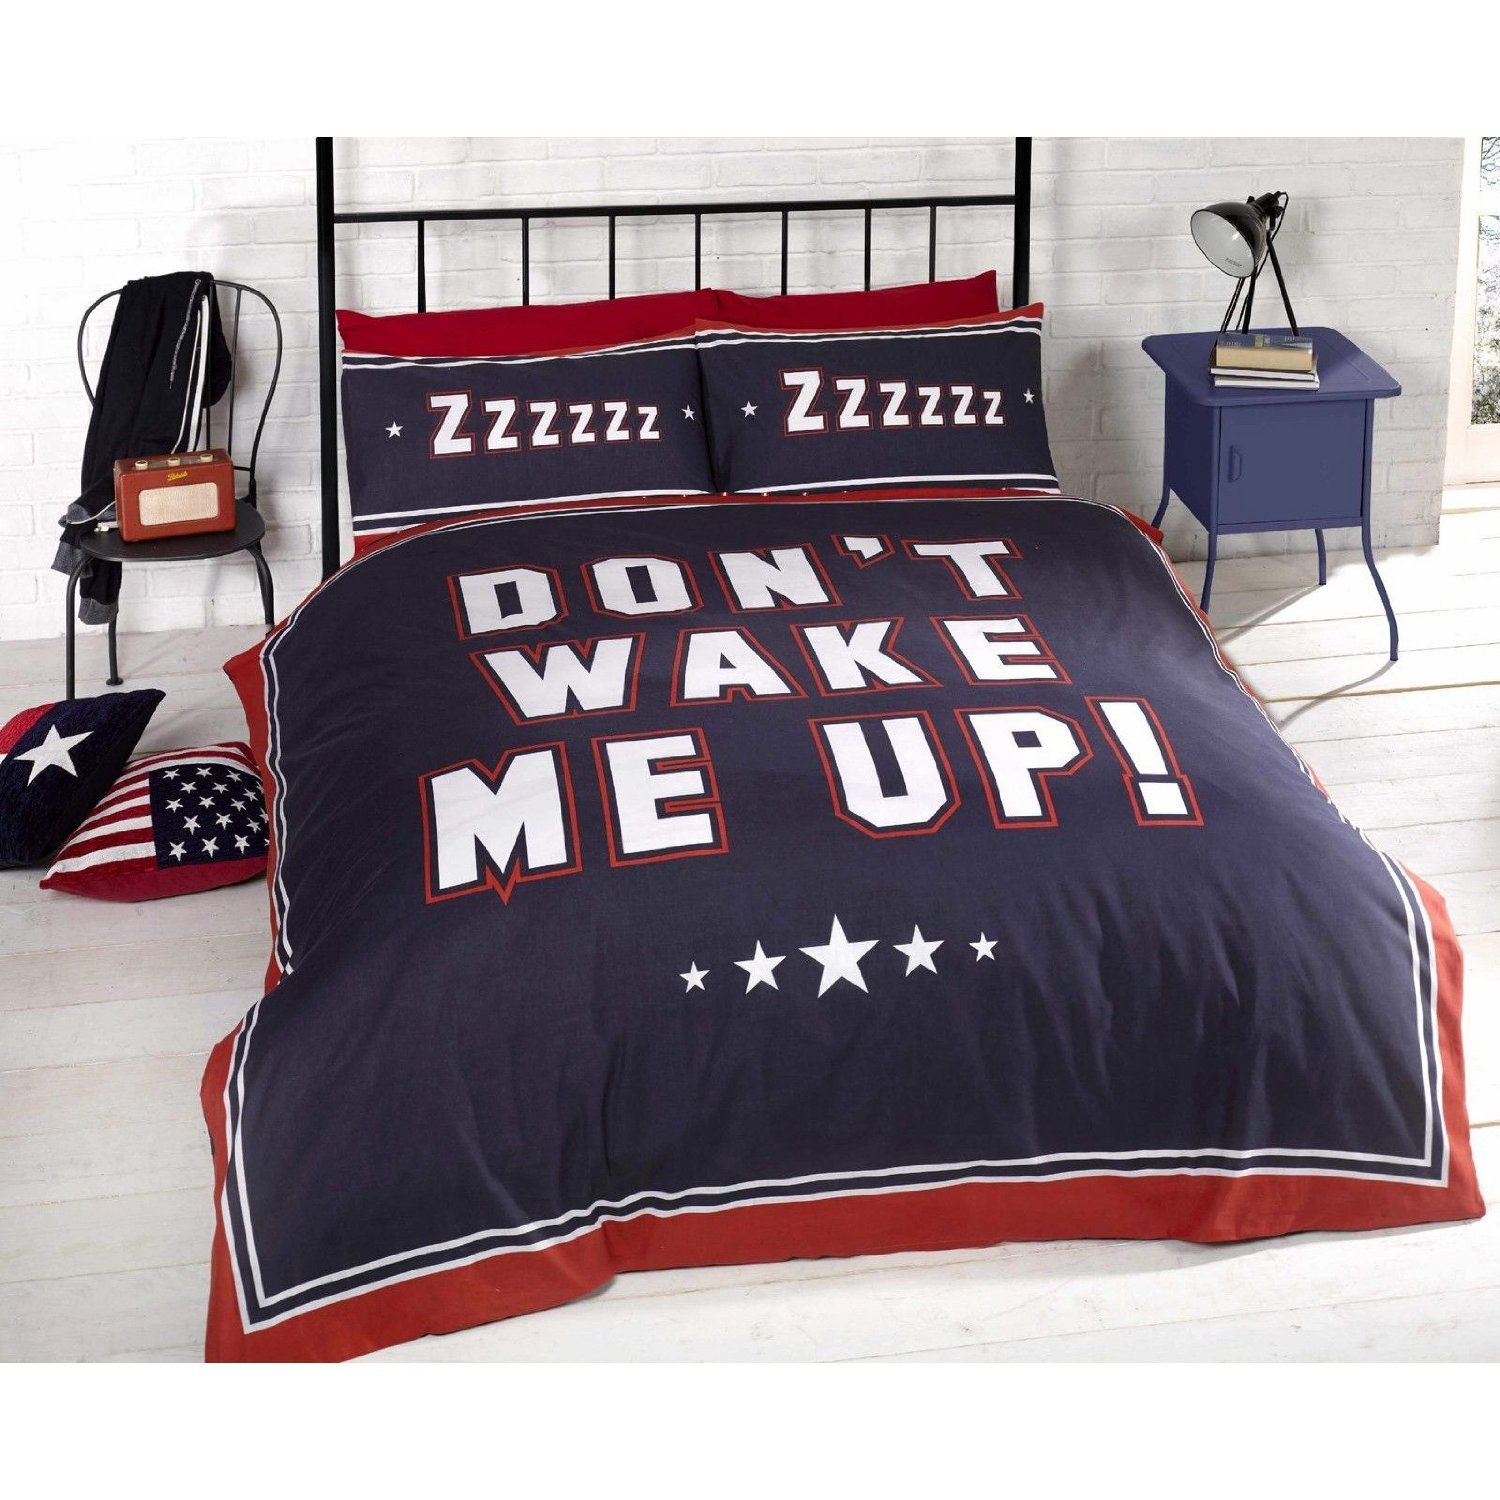 Charming Bedding Heaven Donu0027t Wake Me Up Duvet Cover. Fully Reversible. Perfect Teenage  Bedding Set. Blue And Red Striped Double, By Bedding Heaven: Amazon.co.uk:  ...